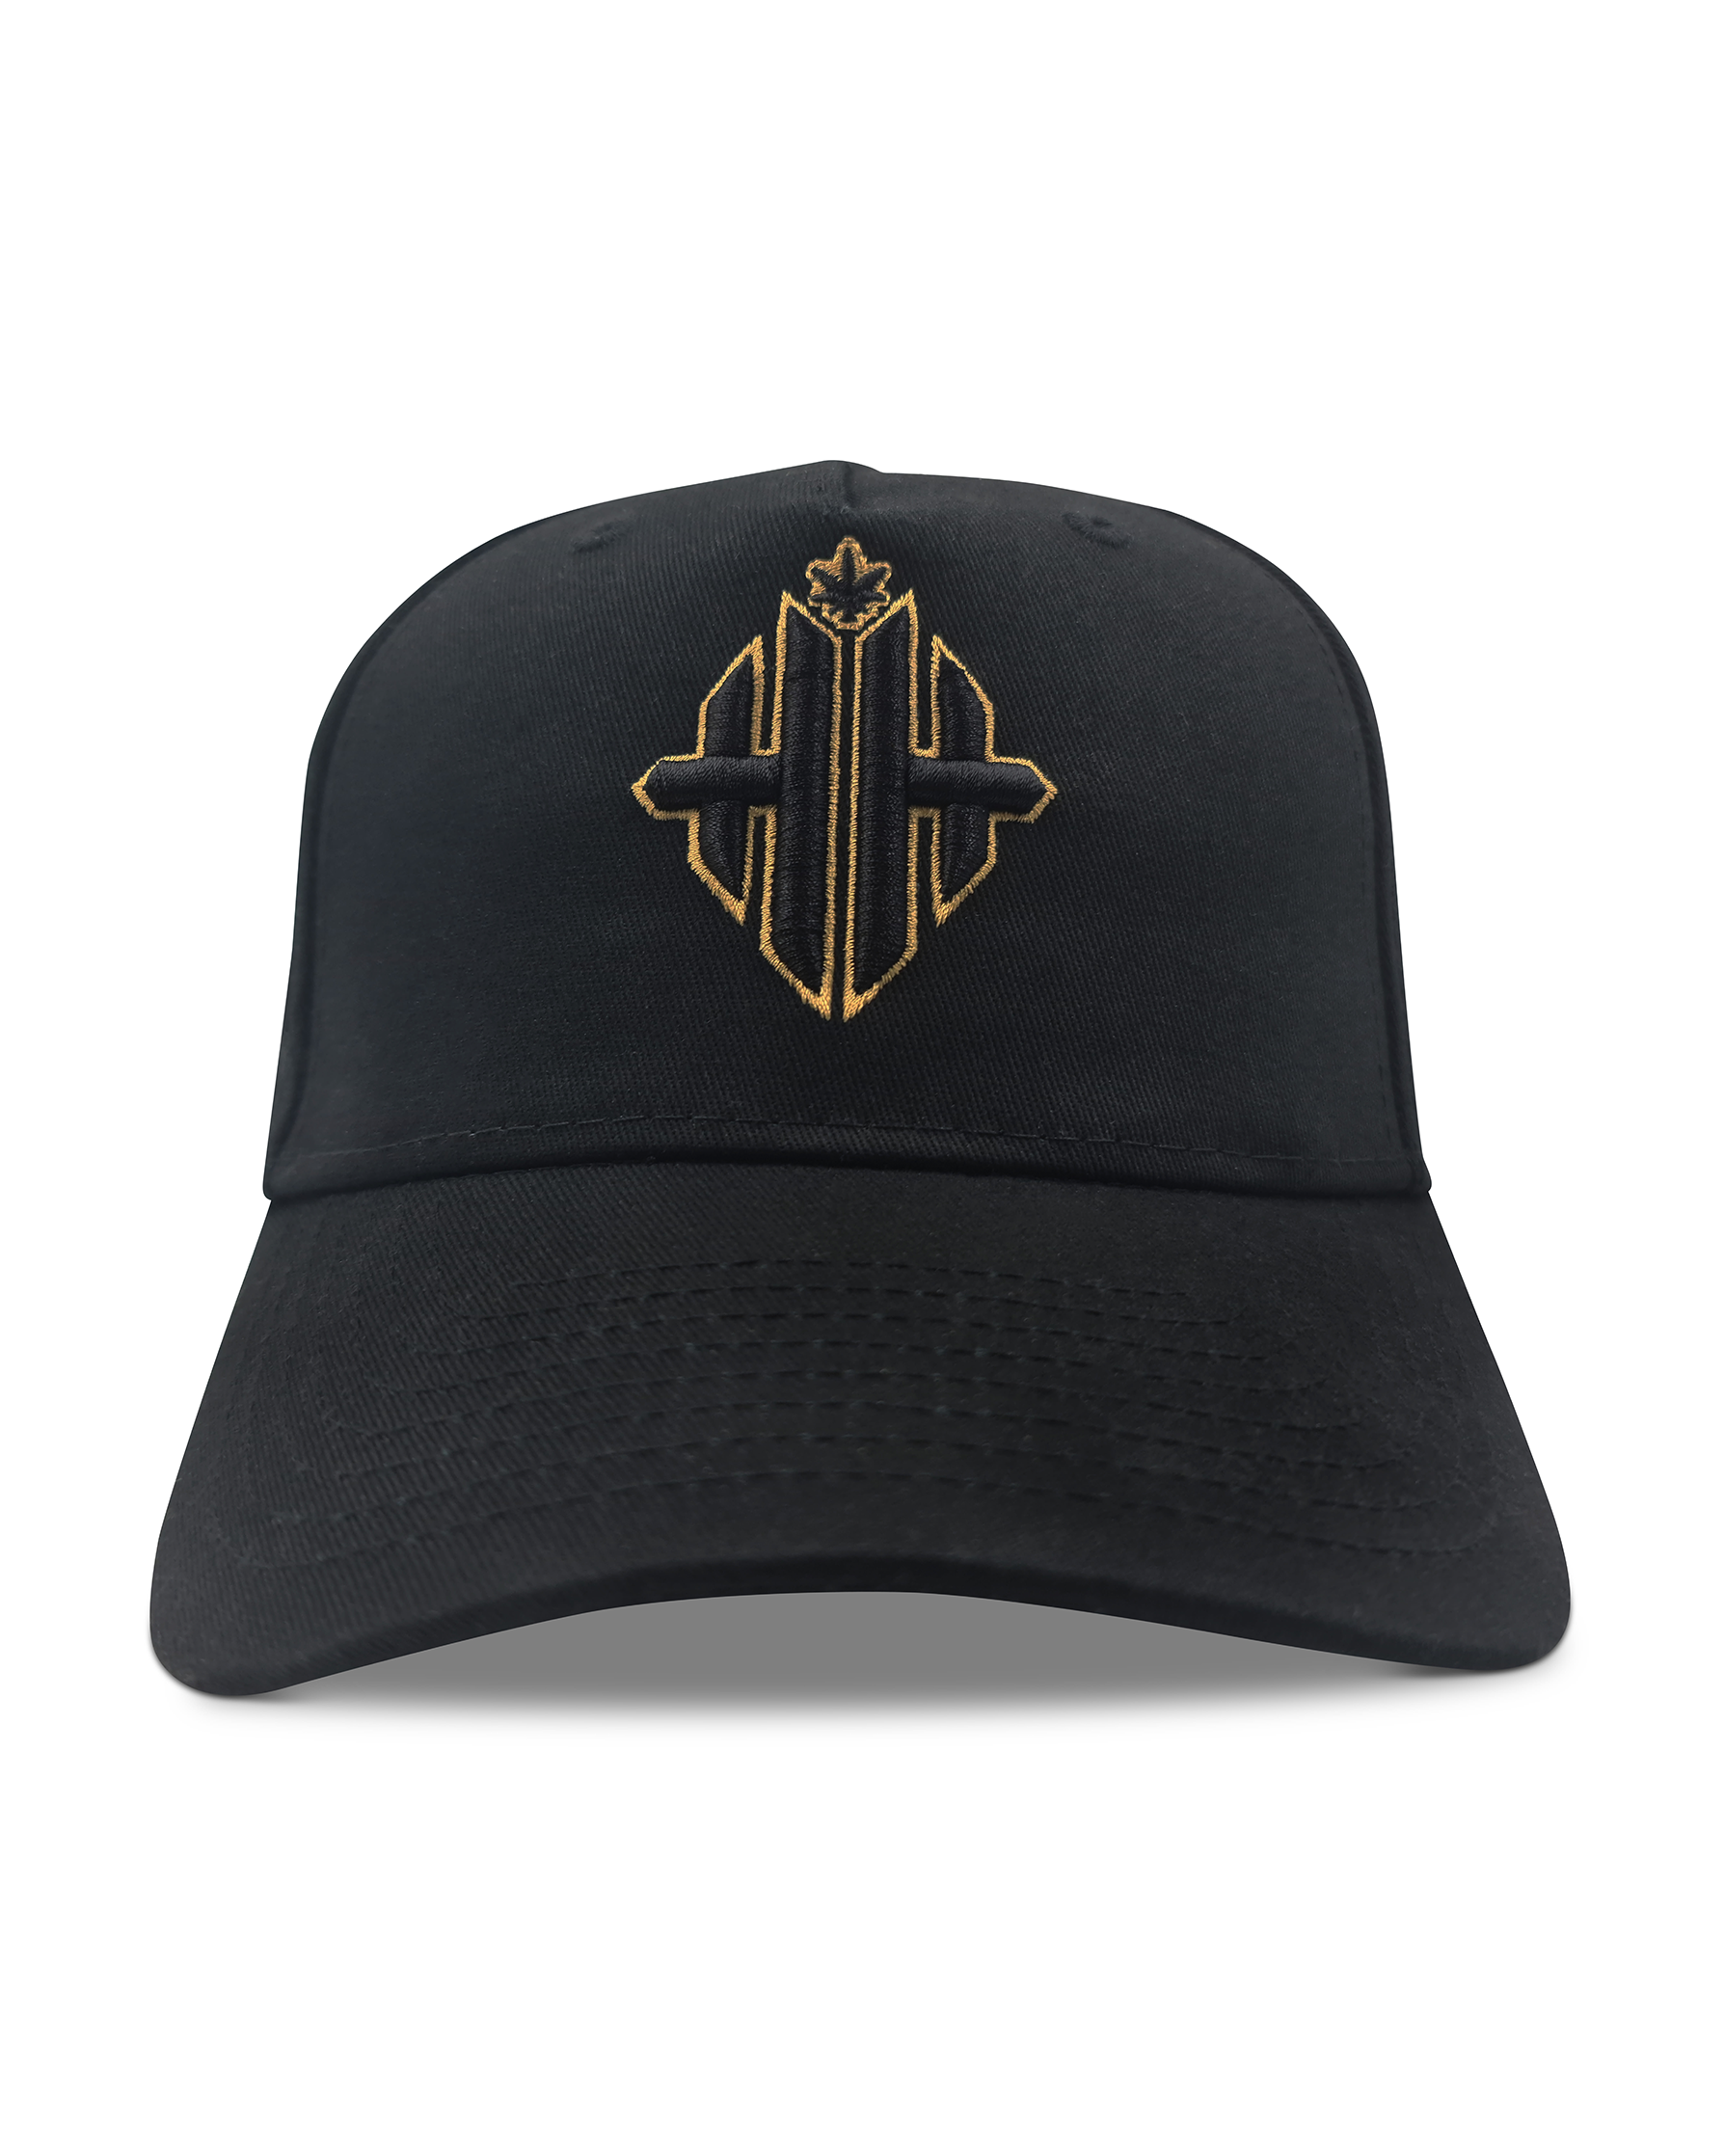 Herbman Hustlin 24k Monogram Cap - Black/Metallic Gold -LIMITED EDITION